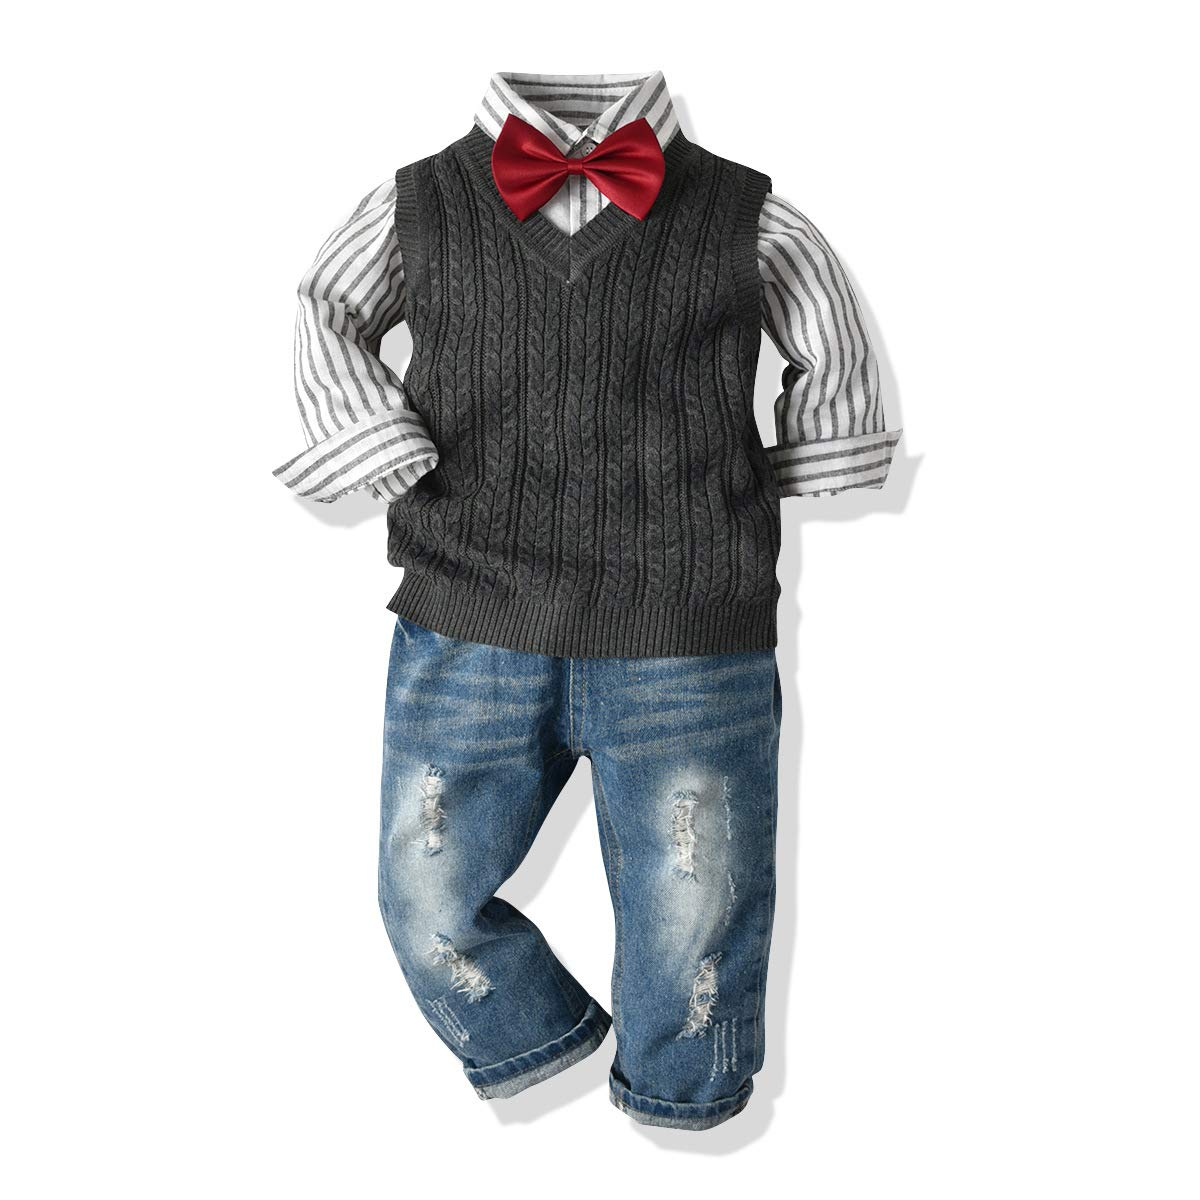 3Piece Toddler Baby Boys Gentleman Outfits Set, Long Sleeve Striped Shirt Ripped Denim Jean Bow Tie Sweater Vest Clothing White by KINGLEN Baby Outfits Set